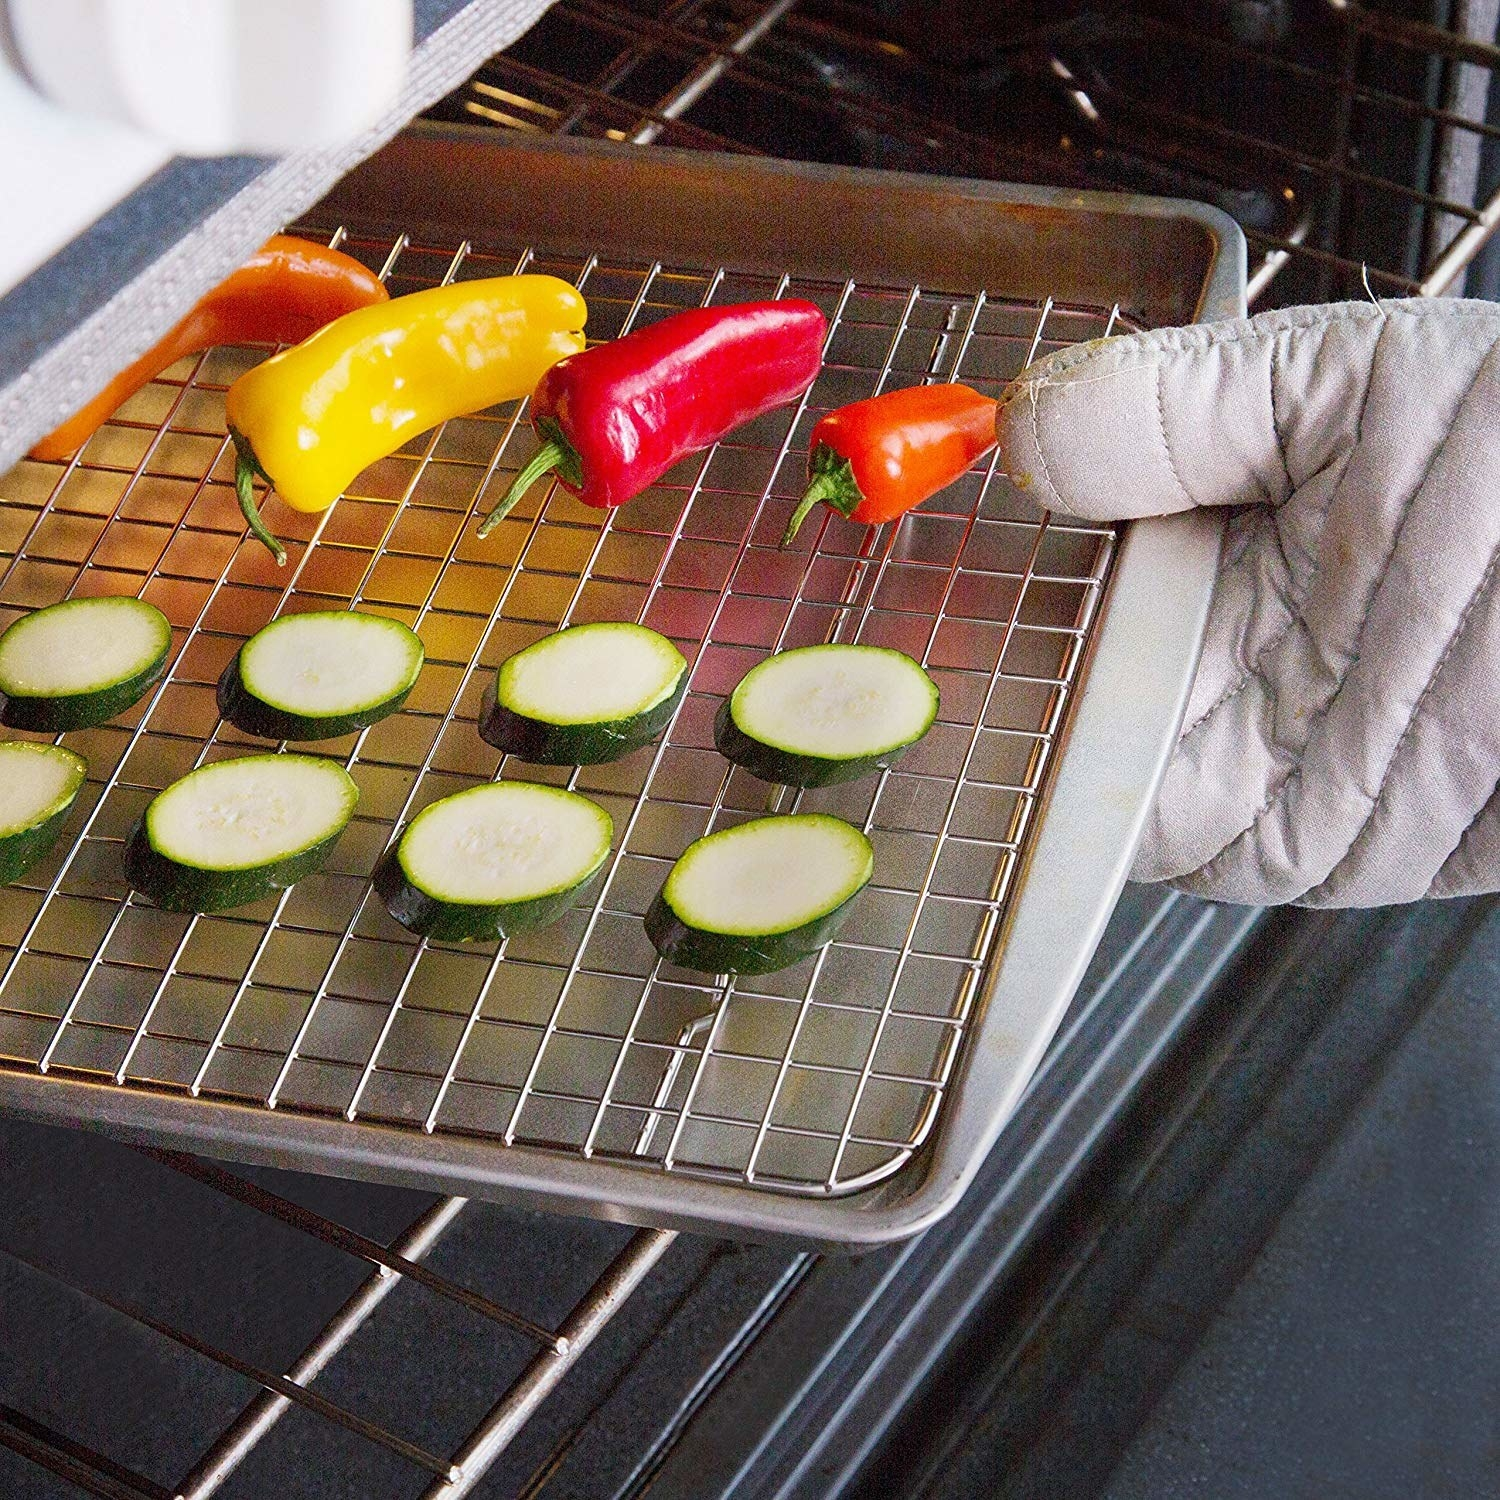 Vegetables being pulled out of the oven. They are on top of the cooling rack, on a backing sheet